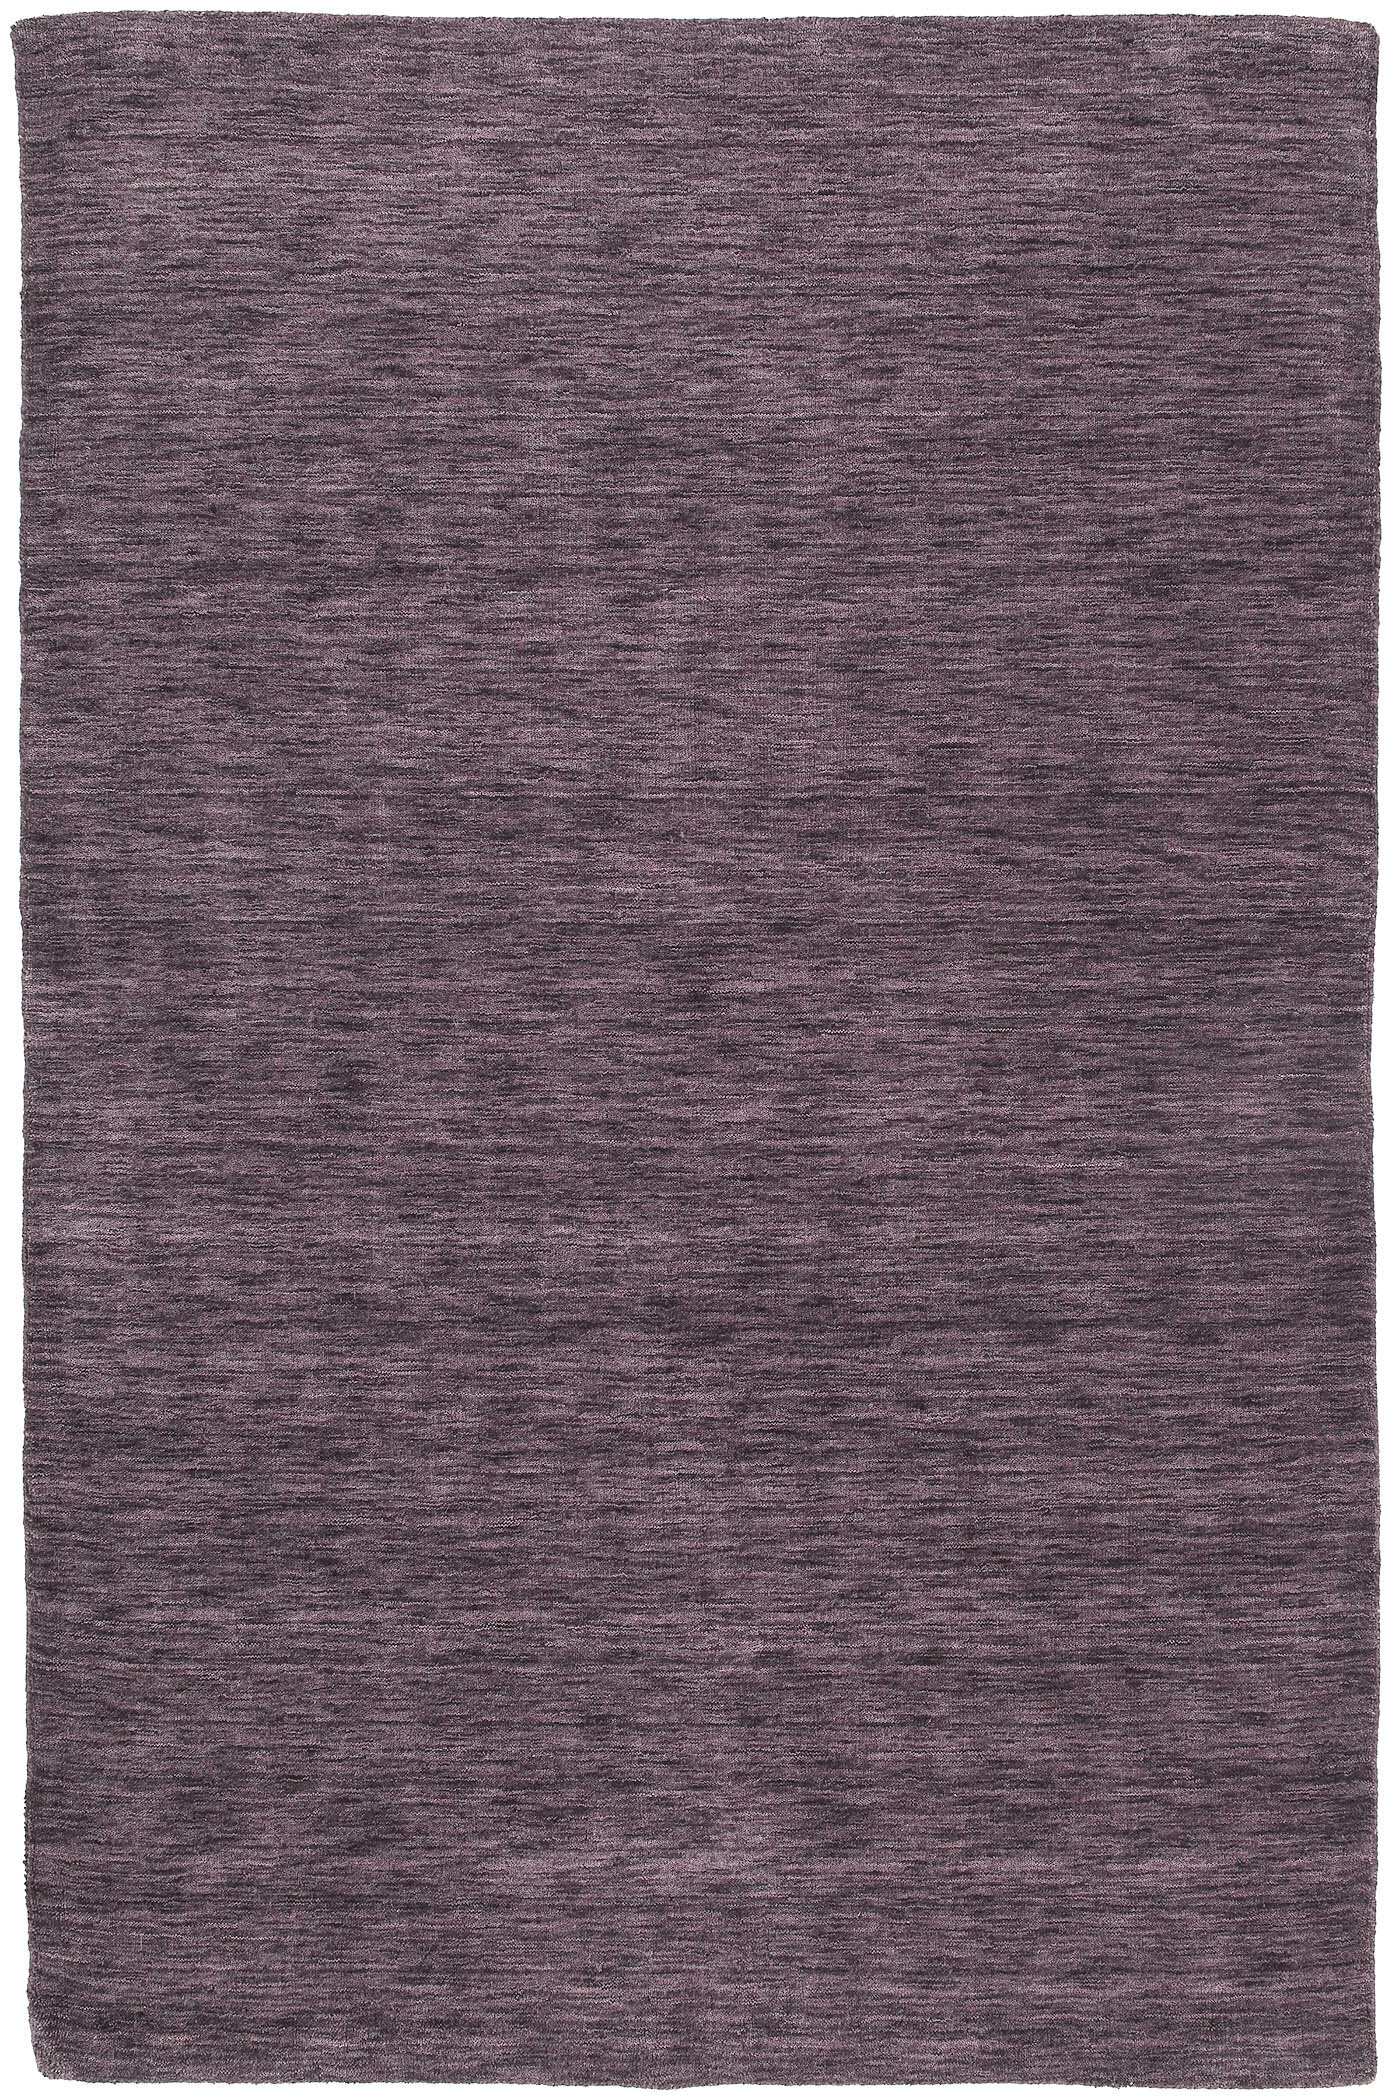 Red Barrel Studio Mccabe Hand Woven Wool Purple Area Rug Reviews Wayfair